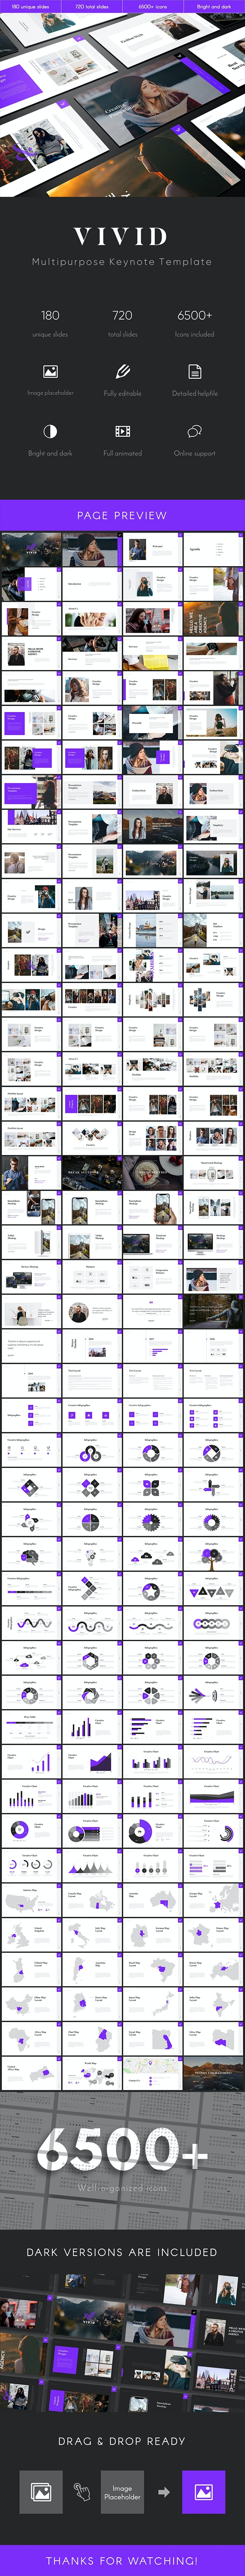 Vivid Multipurpose Keynote Template - Business Keynote Templates